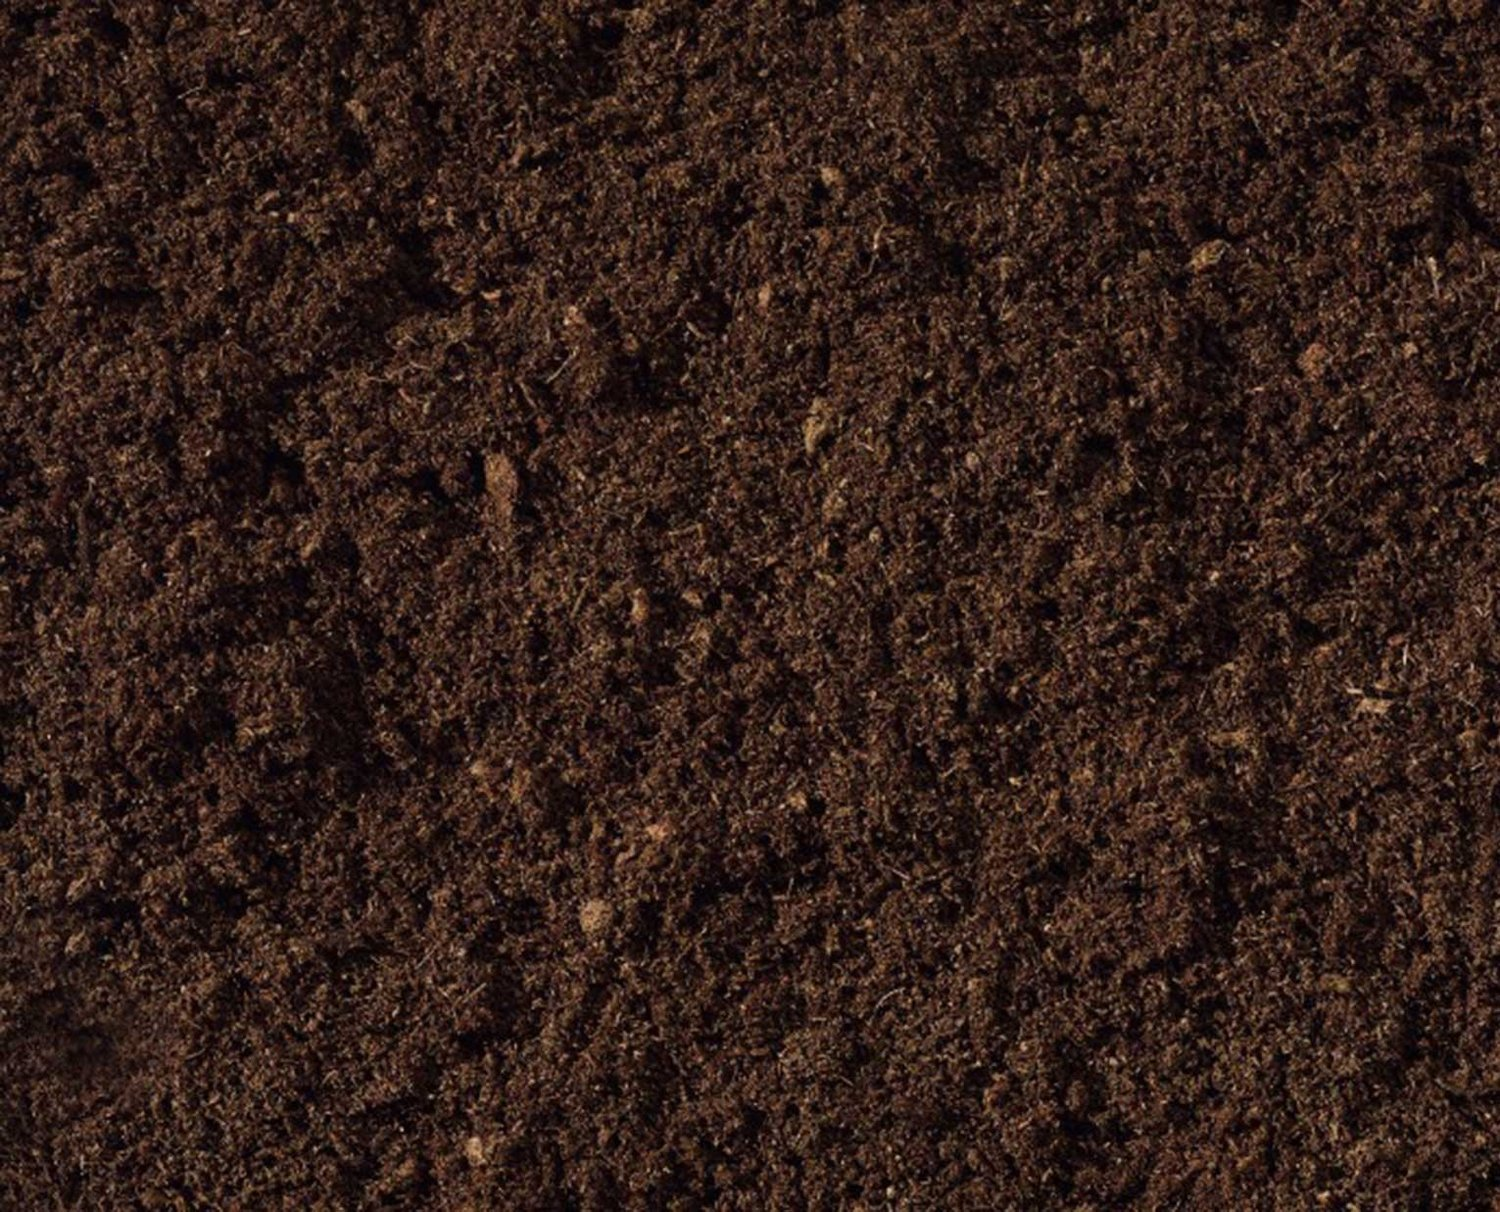 Yard Market Compost - Mike's Mix